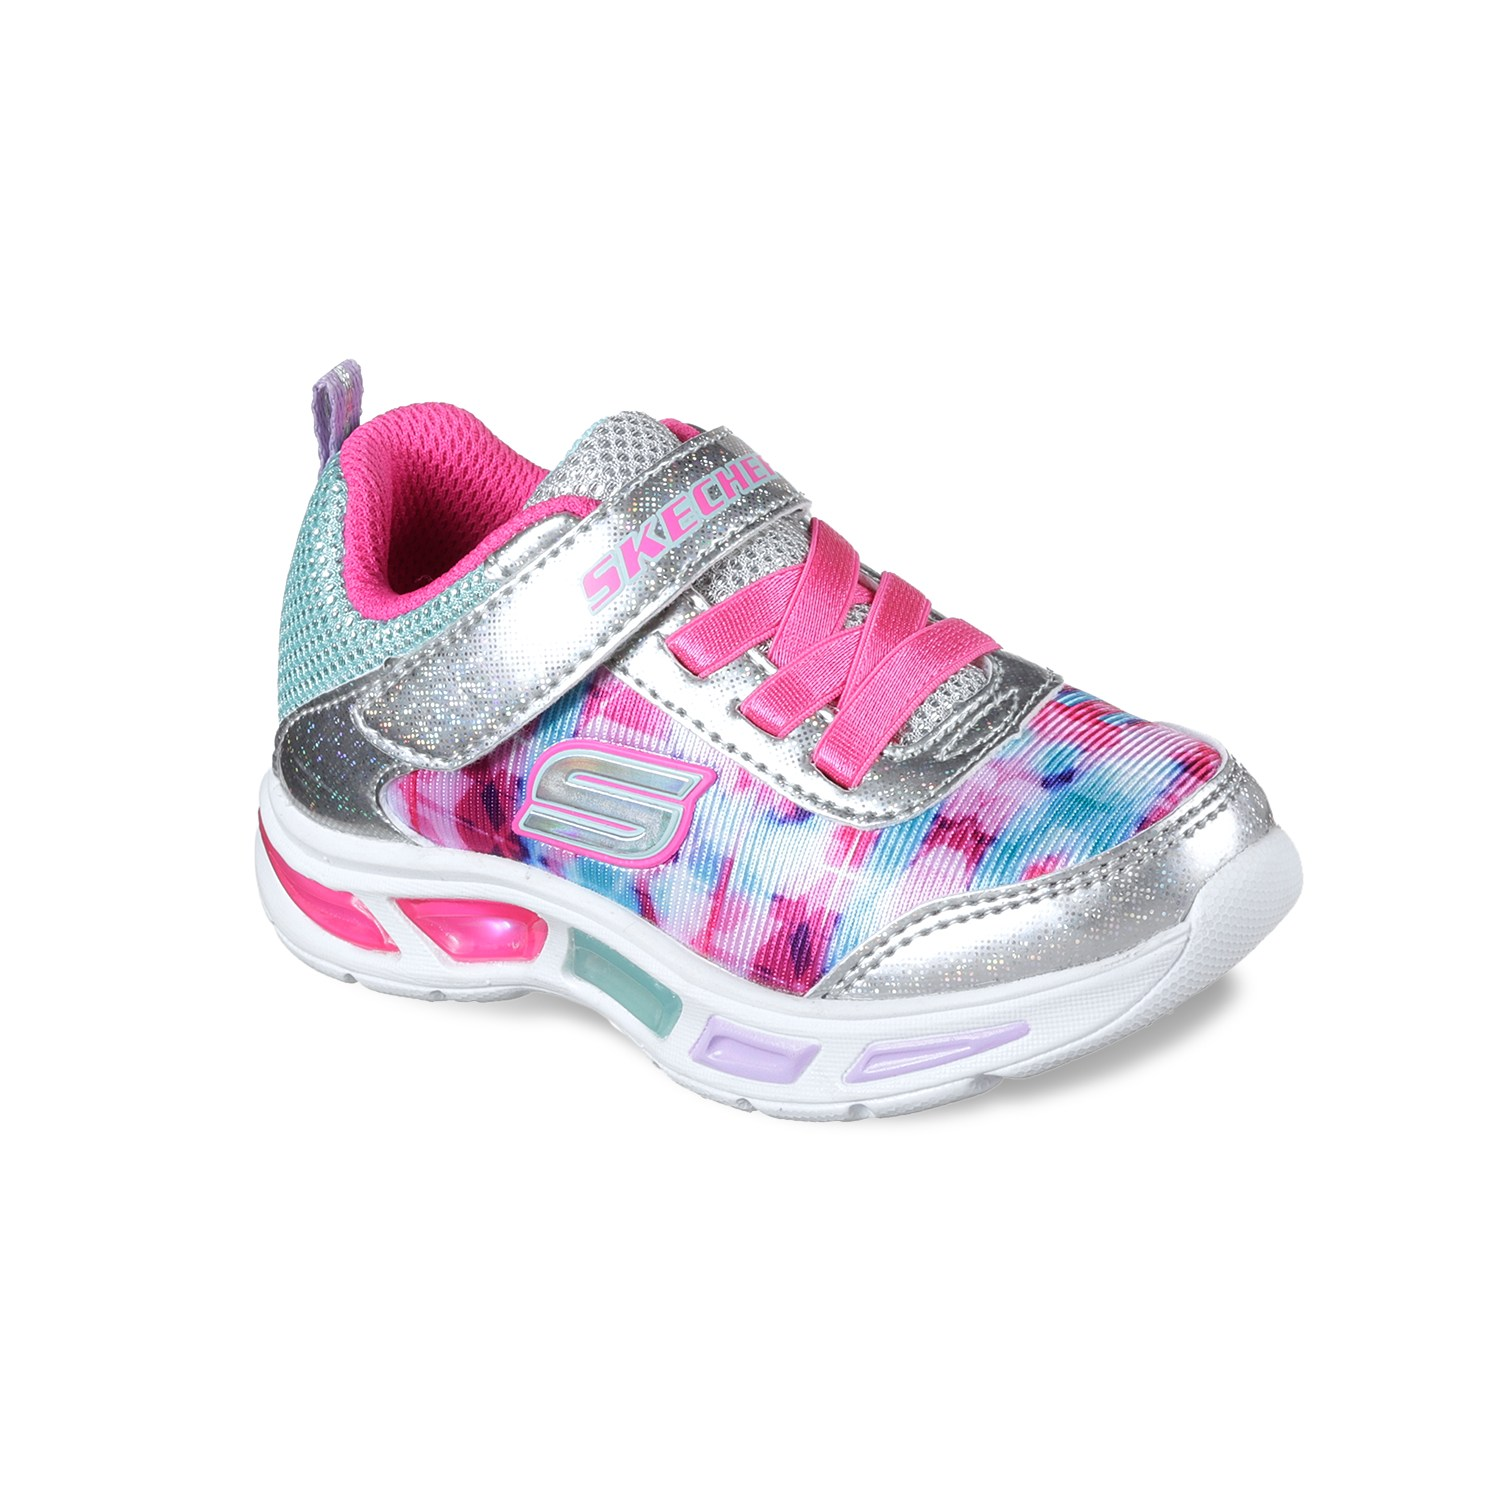 skechers kids skechers s lights litebeams dance n glow toddler girlsu0027 light up sneakers EXBDQCL